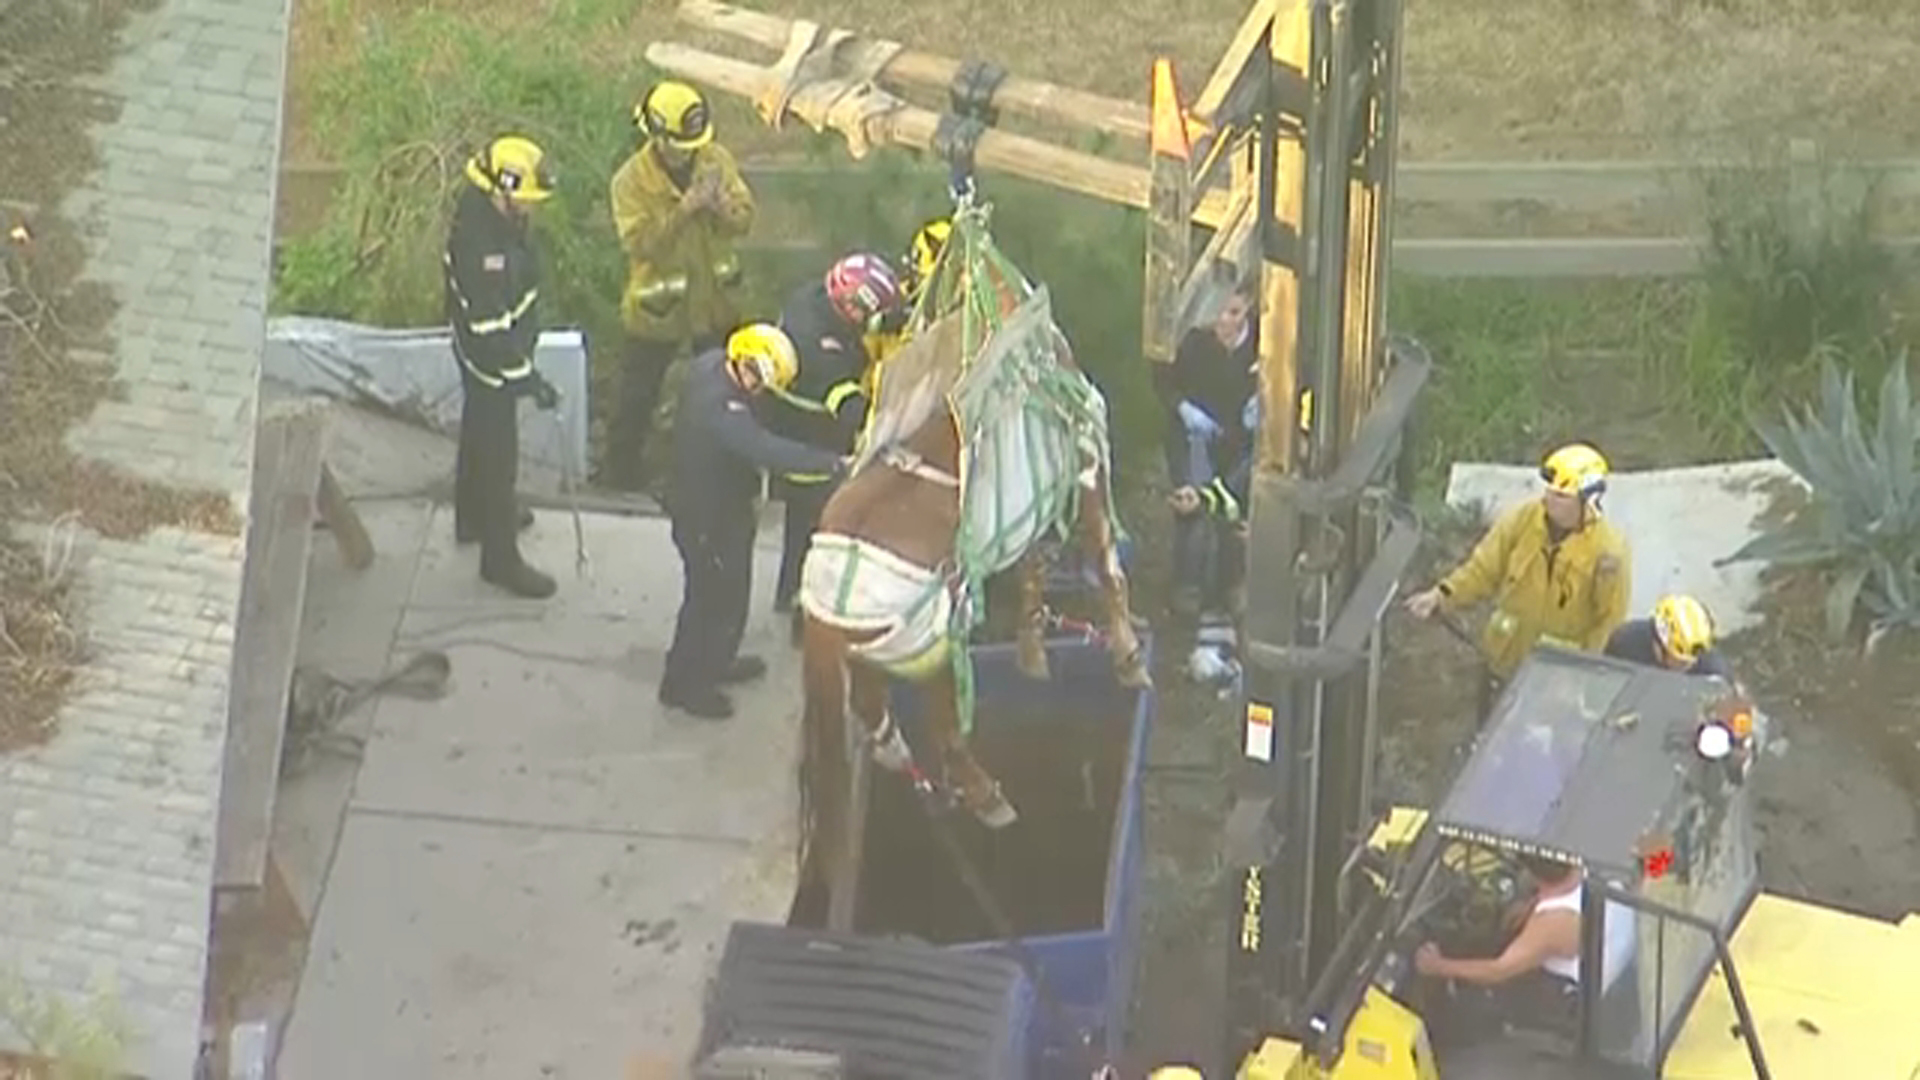 A horse was successfully rescued after becoming stuck inside of a dumpster in Huntington Beach on Friday, Jan. 18, 2019.